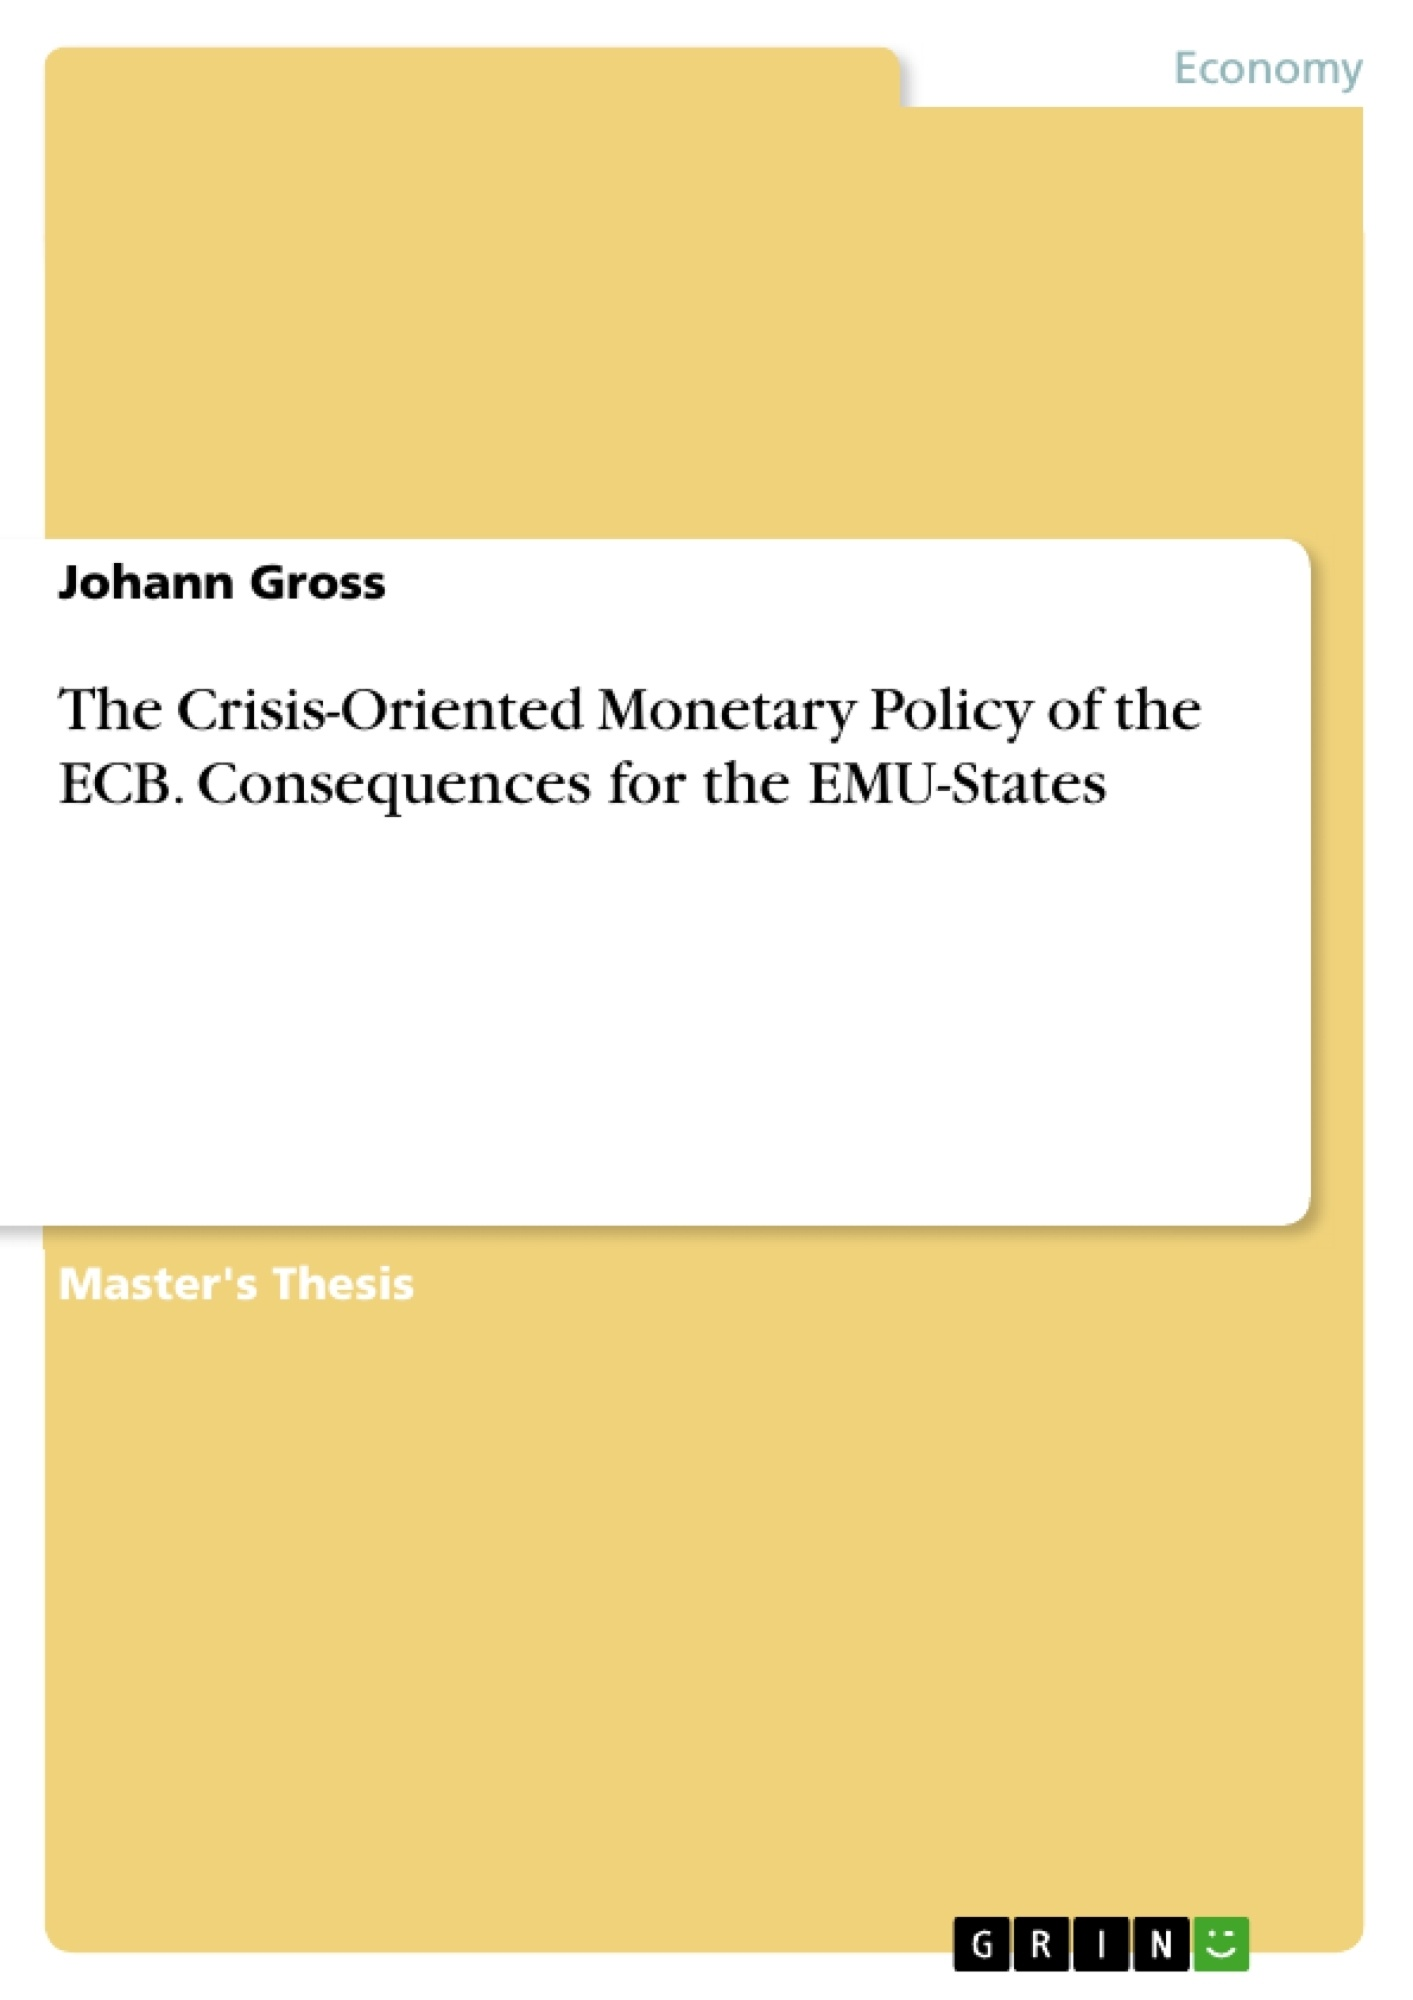 Title: The Crisis-Oriented Monetary Policy of the ECB. Consequences for the EMU-States